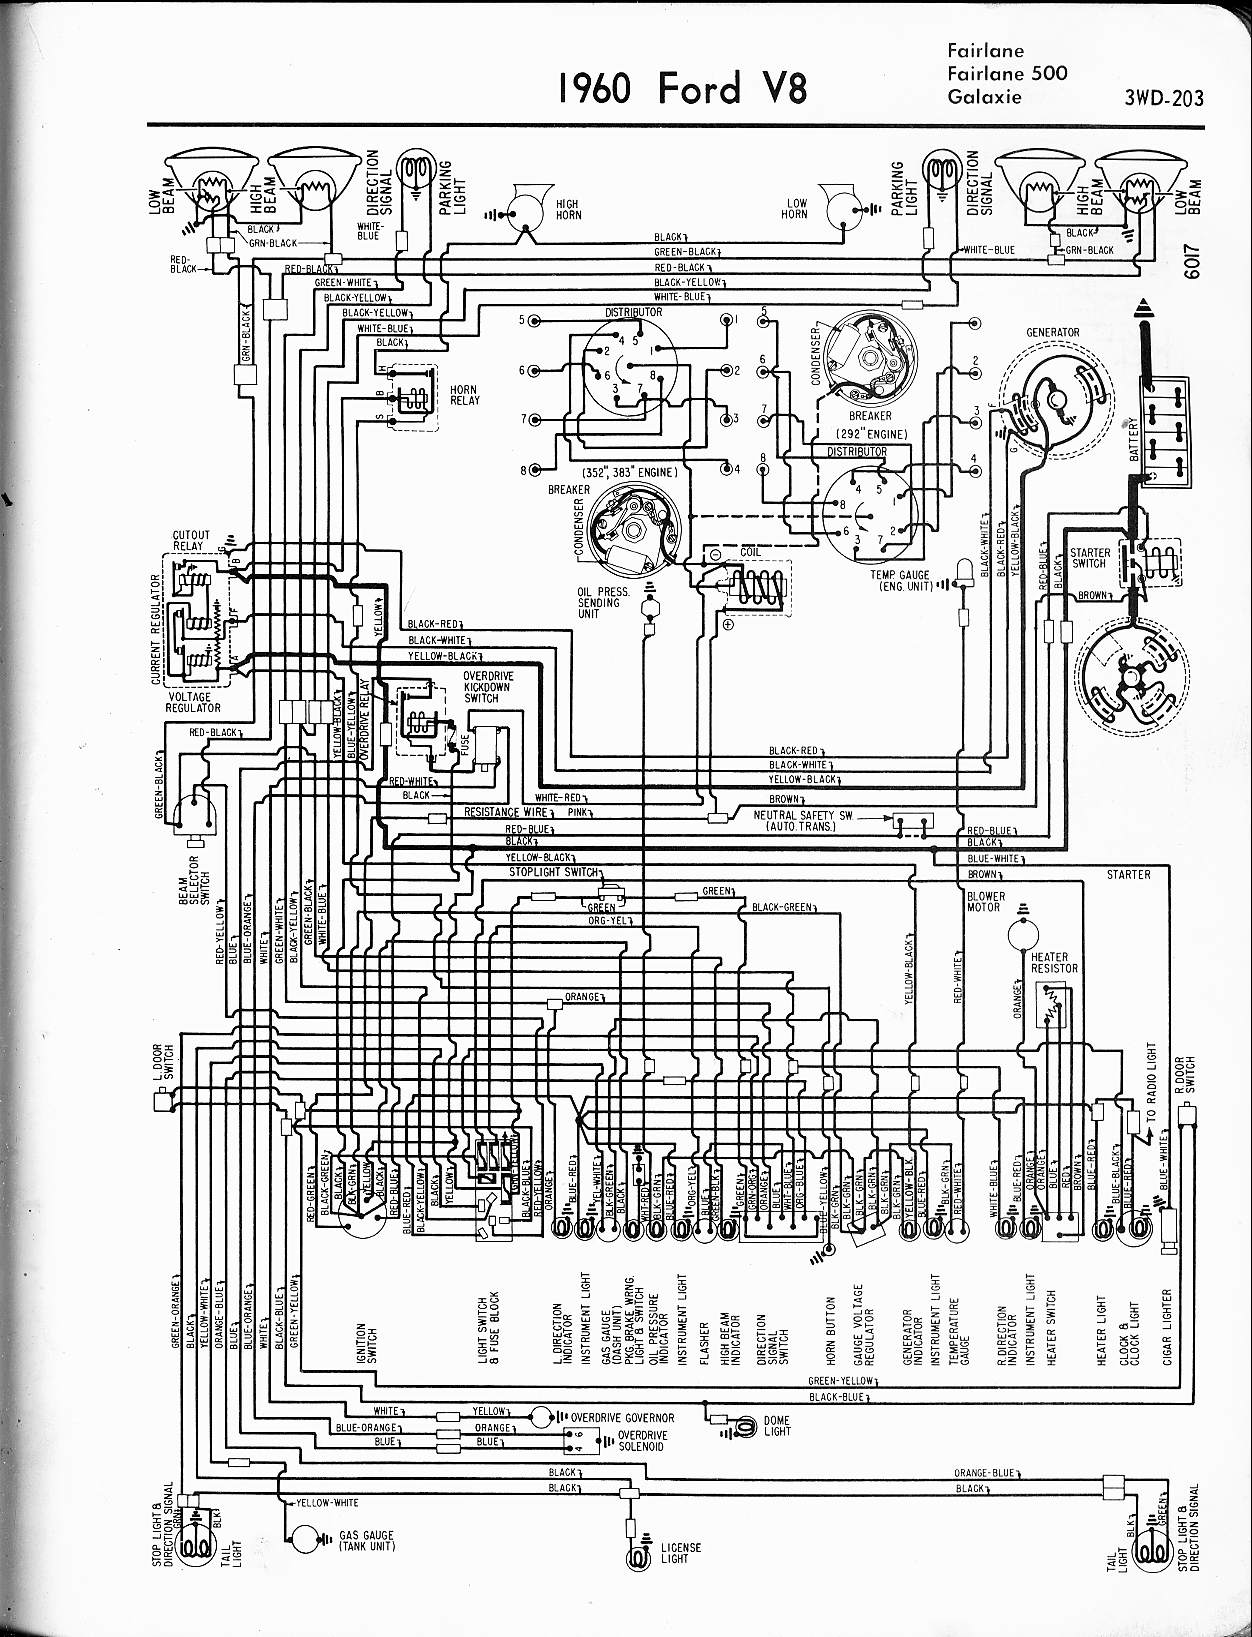 Mwire on 1958 Ford Wiring Diagram